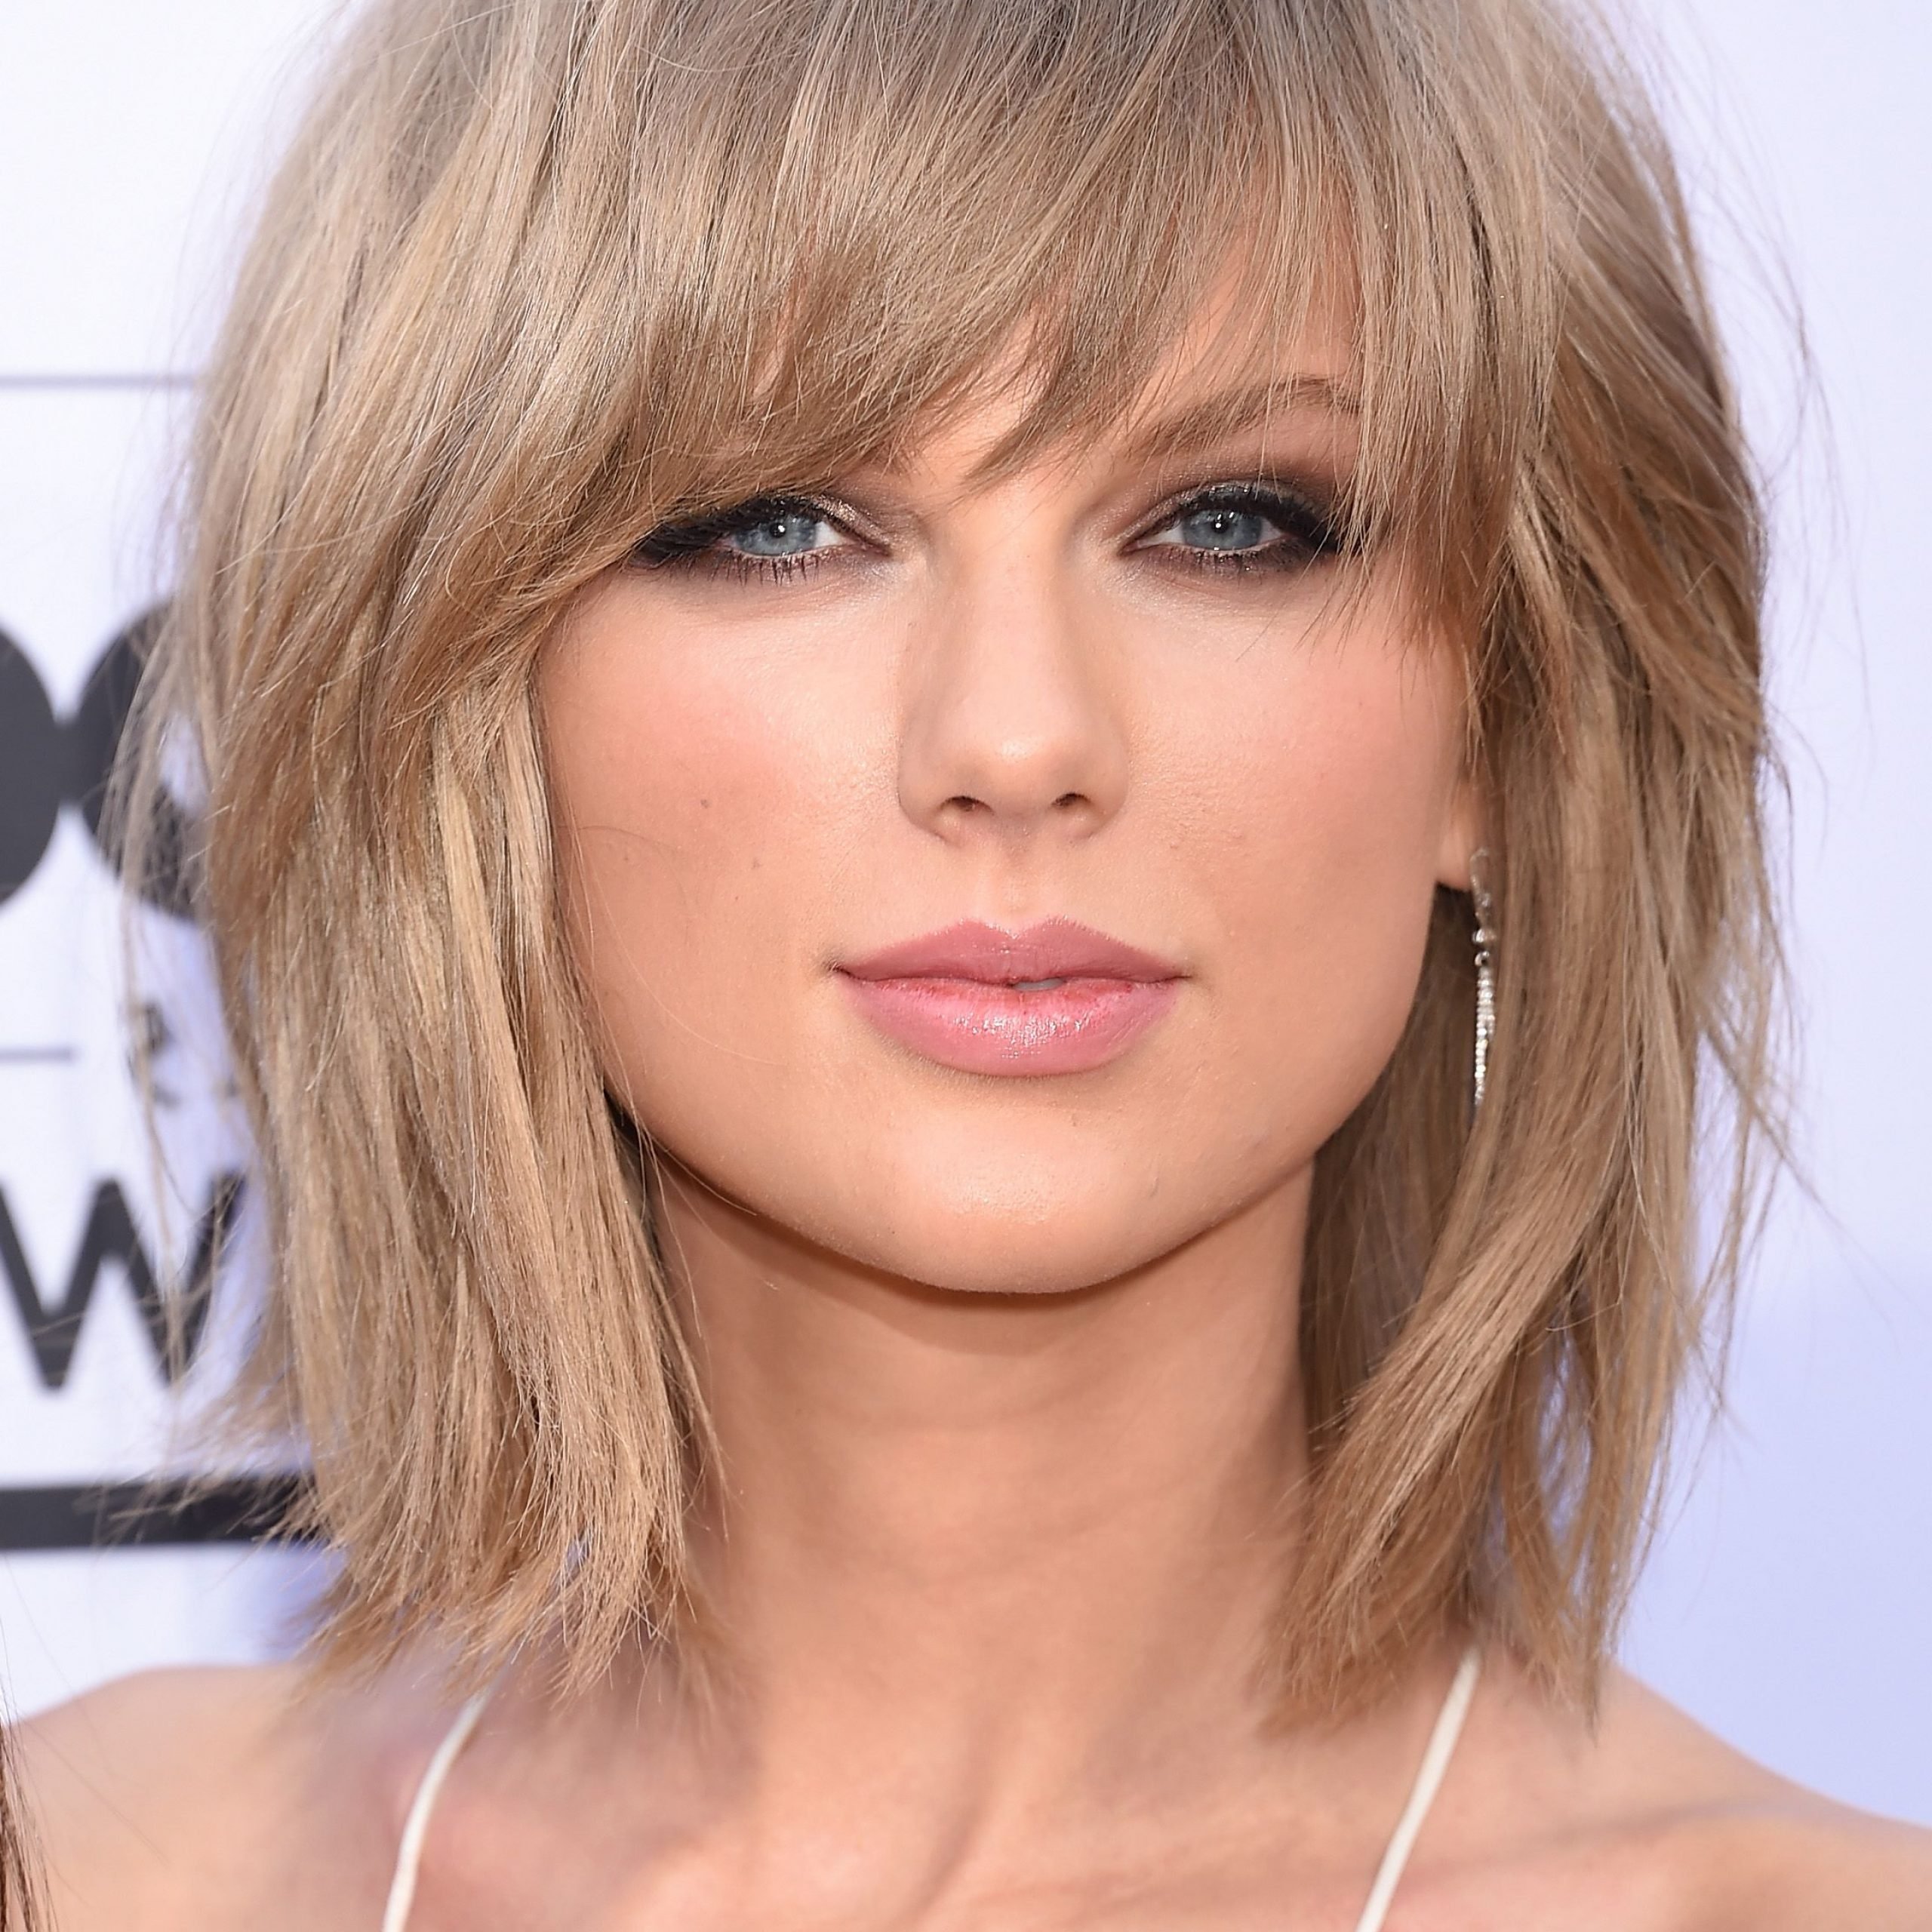 Newest Gorgeous Wavy White Shag Haircuts Intended For 32 Celebrity Shag Haircut Ideas – Shag Hairstyle Long And Short (View 13 of 20)